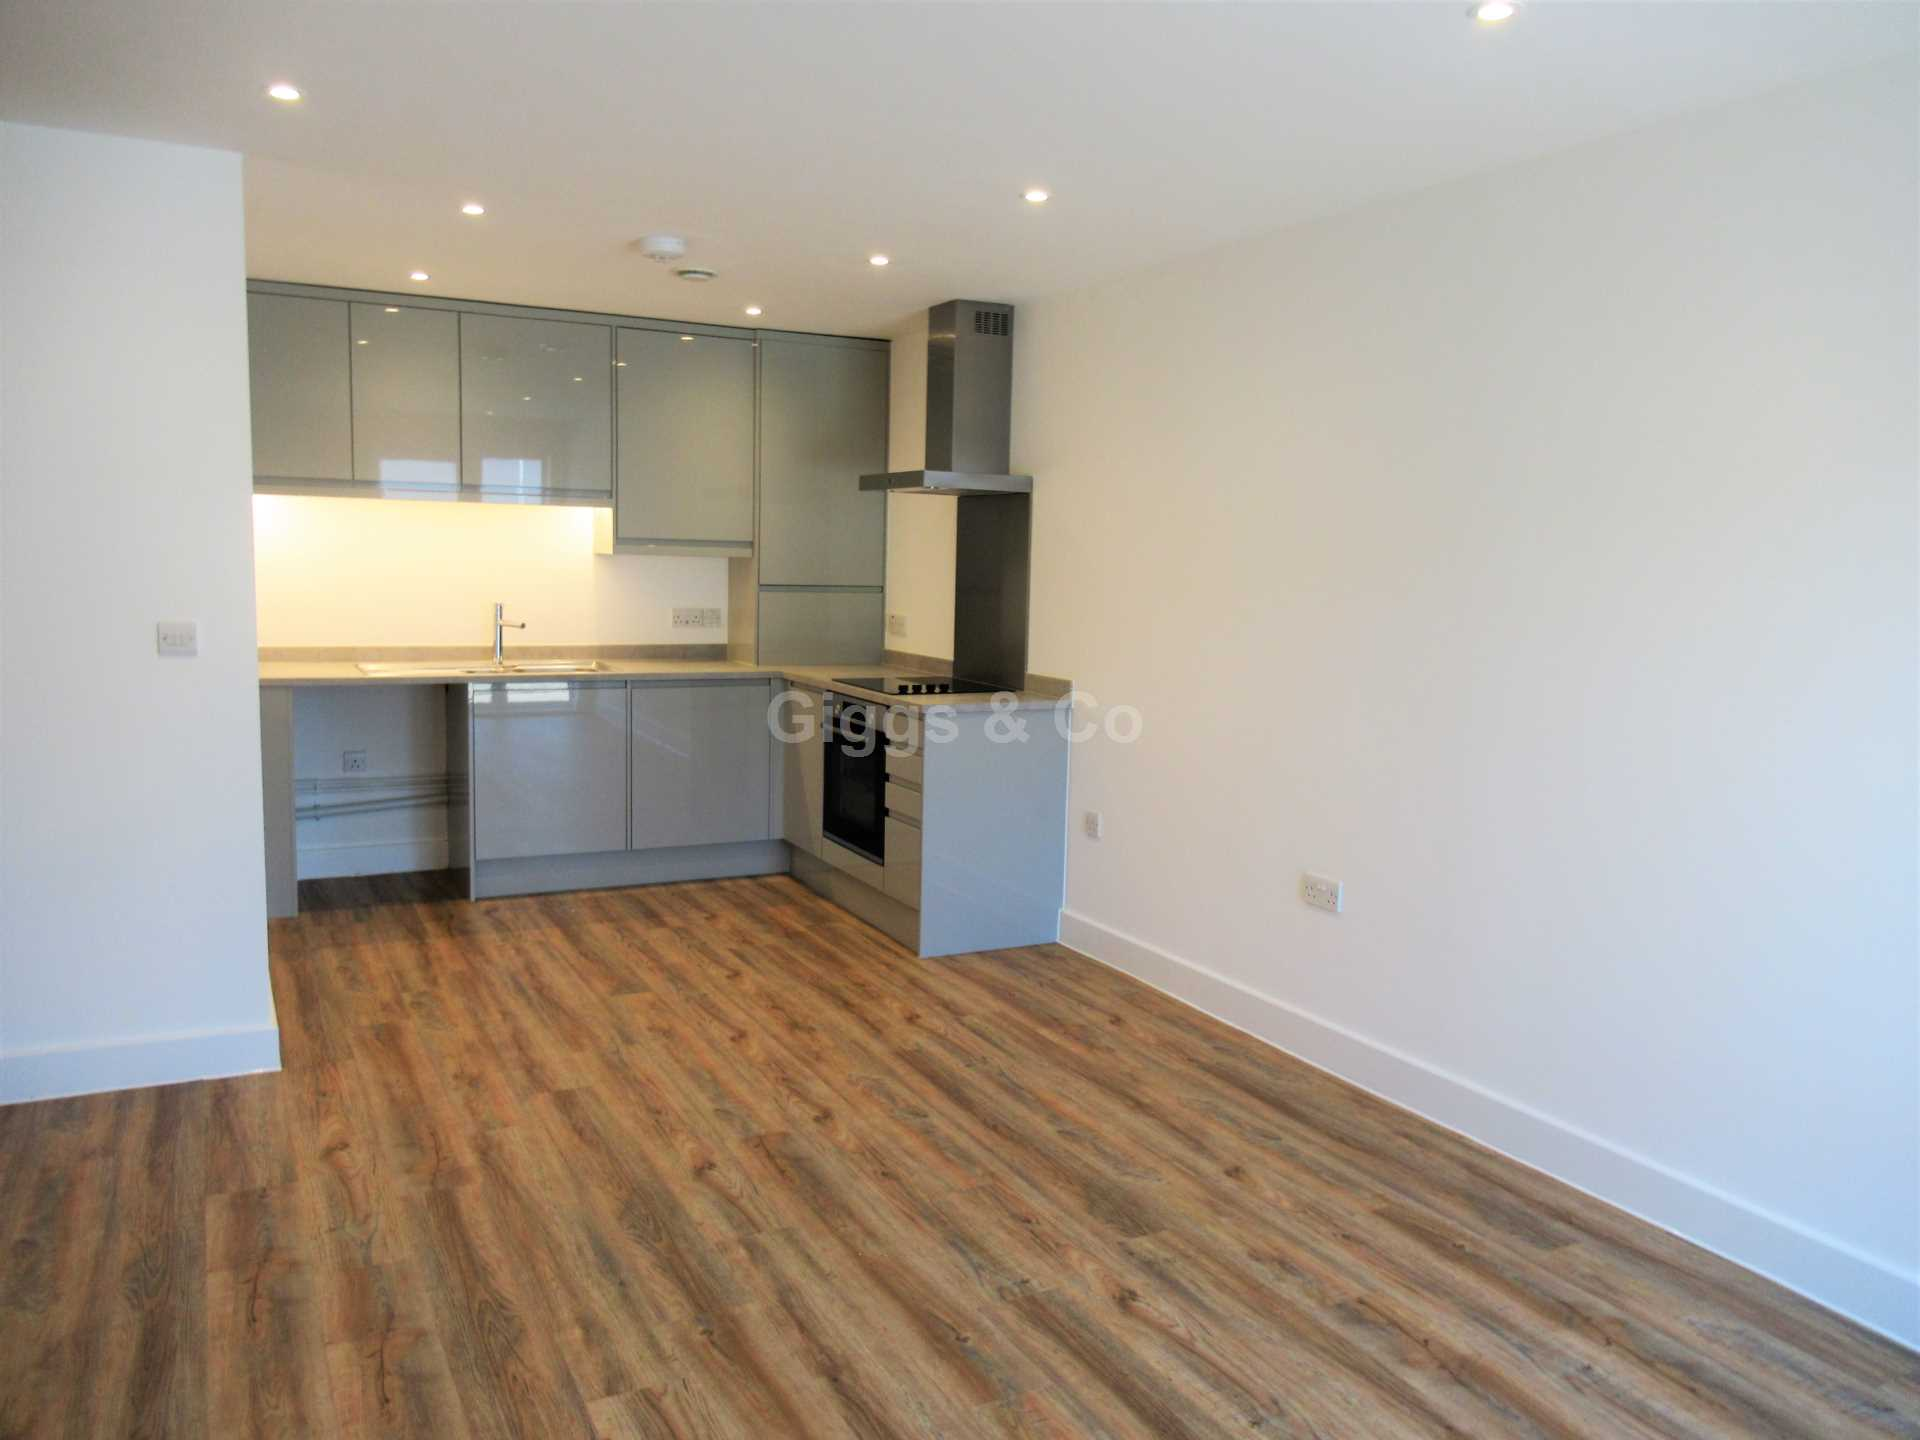 1 bed apartment to rent in Drovers Place, Huntingdon  - Property Image 2